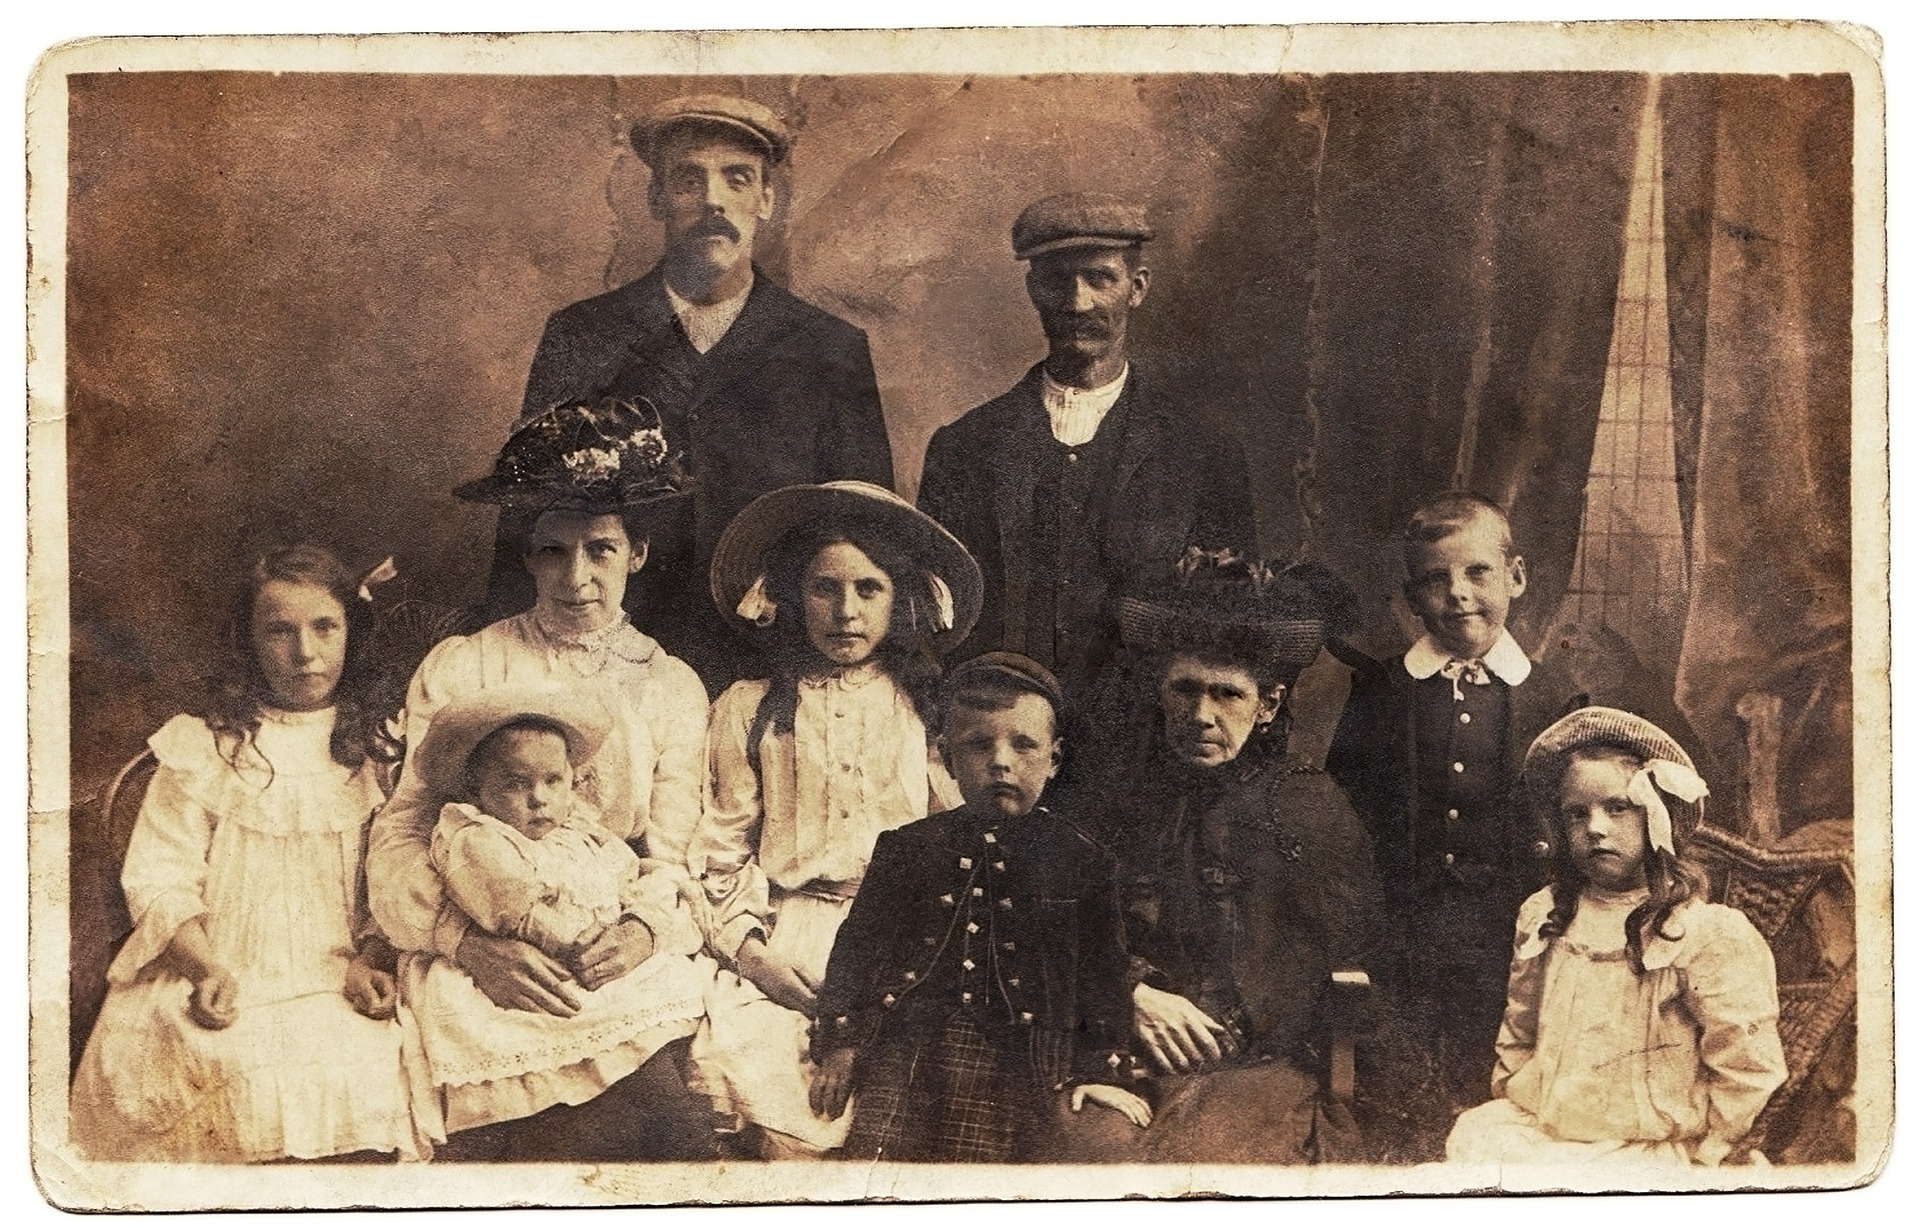 family-portrait-613968_1920